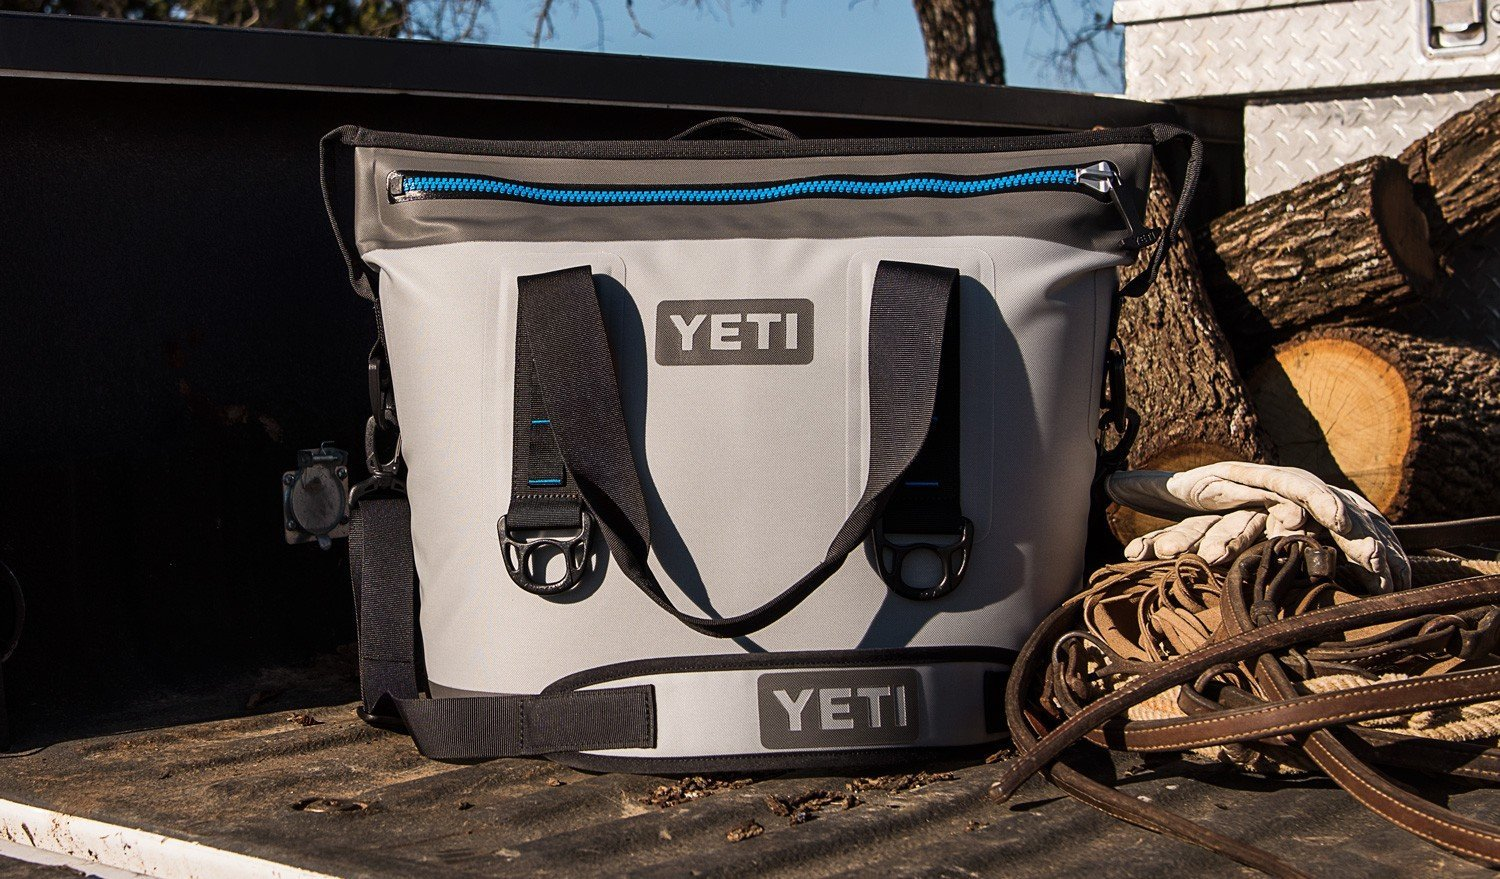 Top 5 Best Yeti Coolers For Hunting, Camping, Fishing & More